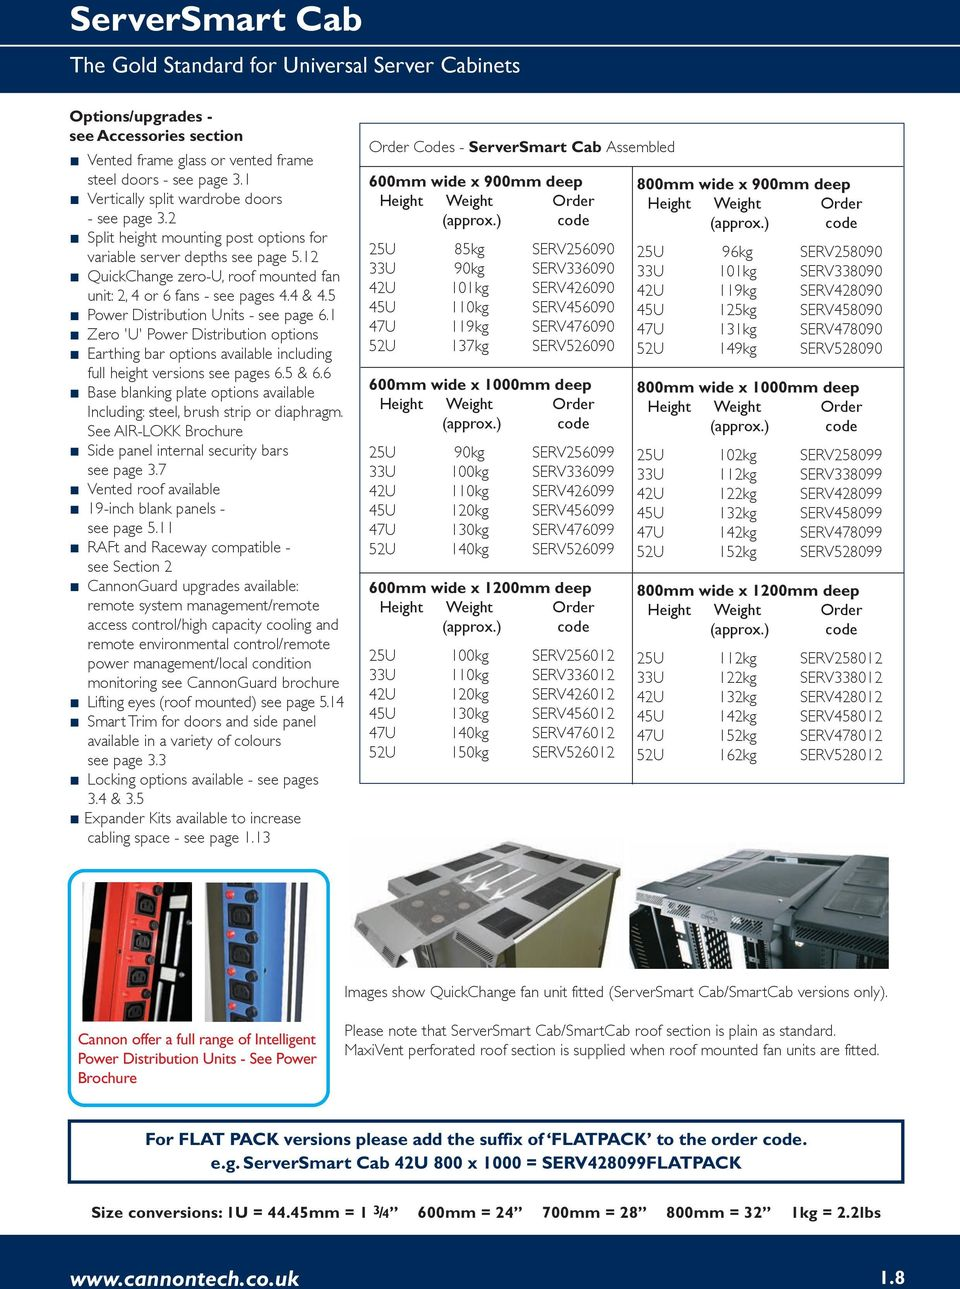 4 & 4.5 Power Distribution Units - see page 6.1 Zero 'U' Power Distribution options Earthing bar options available including full height versions see pages 6.5 & 6.